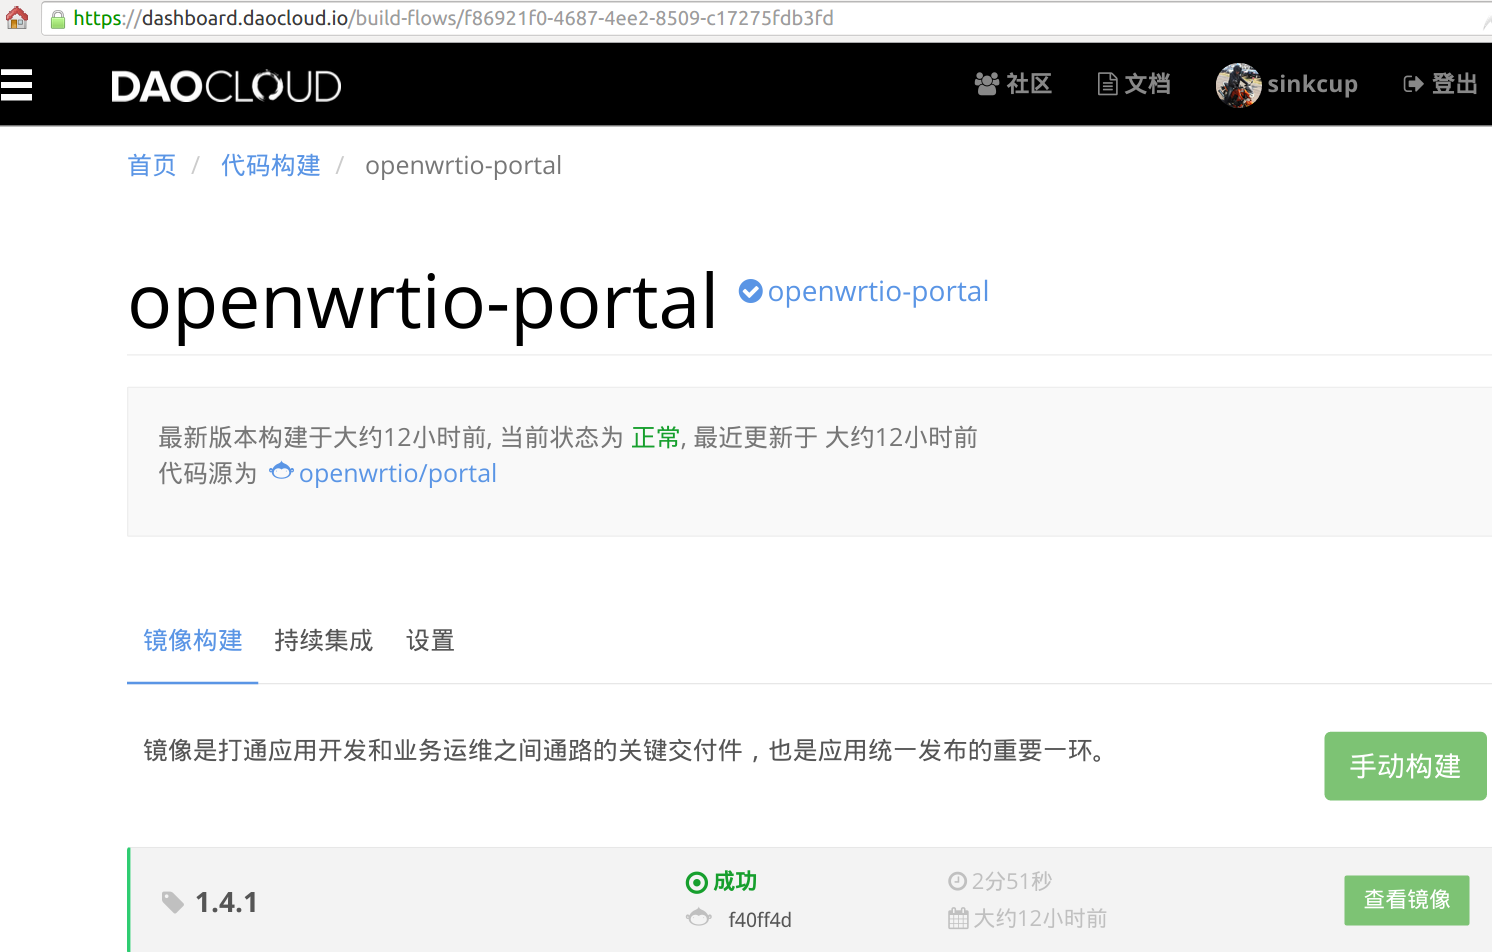 daocloud build-flows success openwrtio-portal